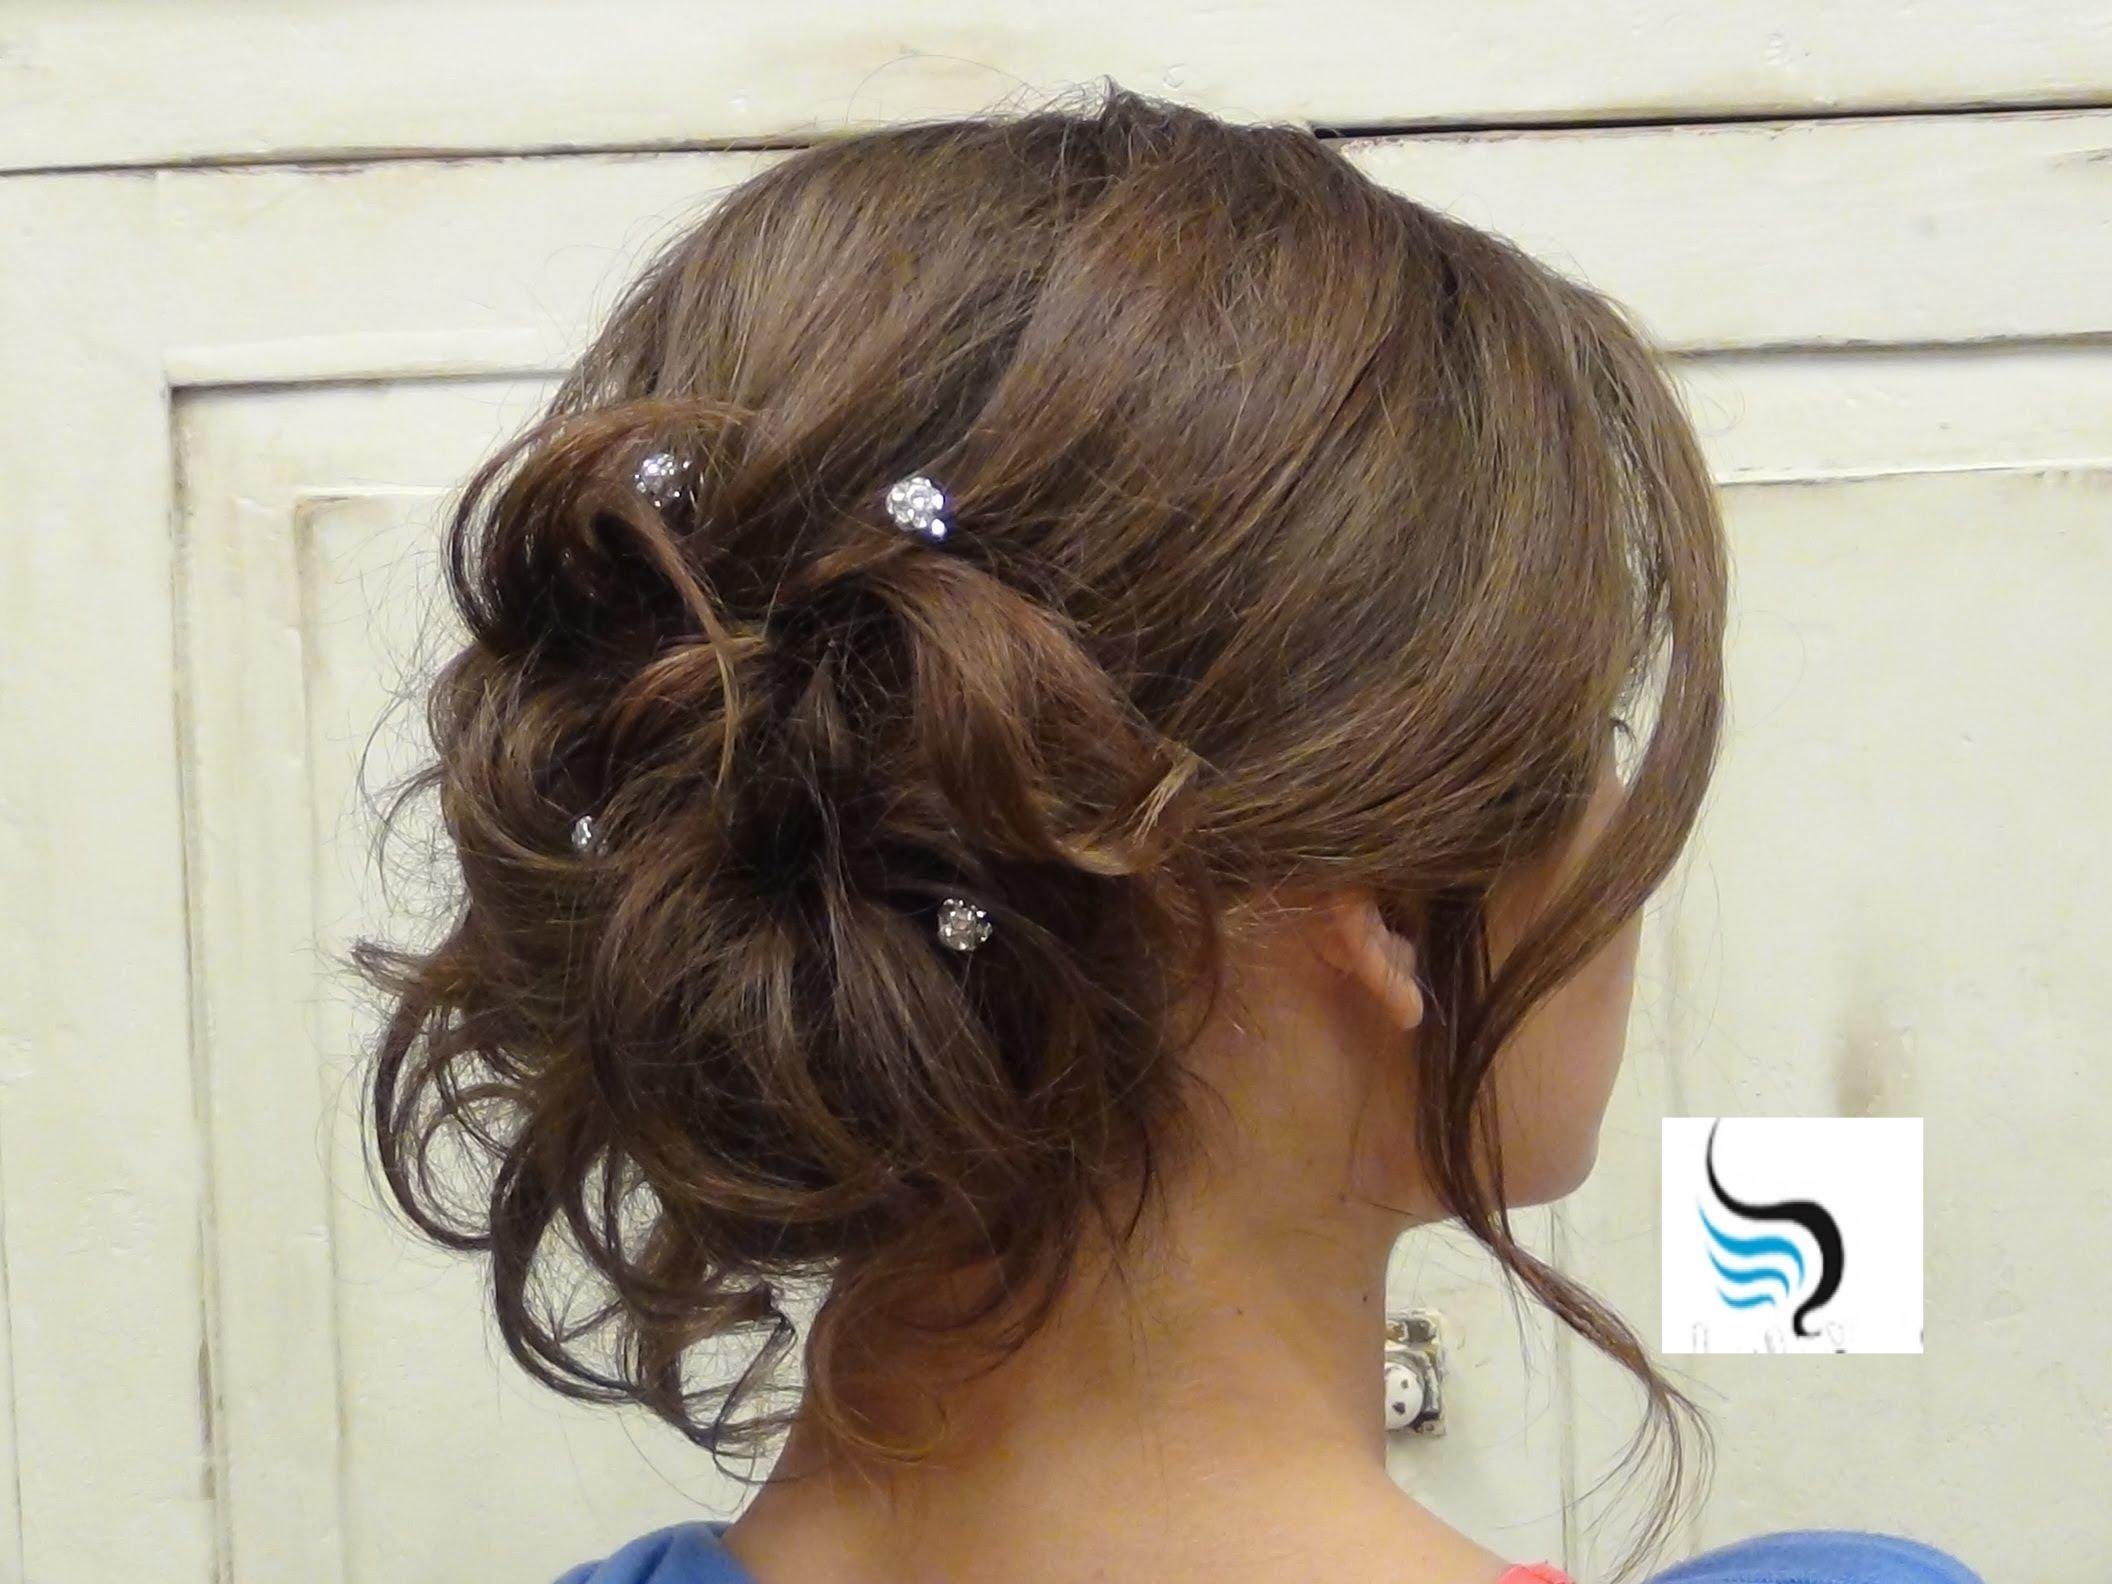 Soft Curled Updo) For Long Hair Prom Or Wedding Hairstyles – Youtube With Regard To Messy Updo Hairstyles For Wedding (View 7 of 15)